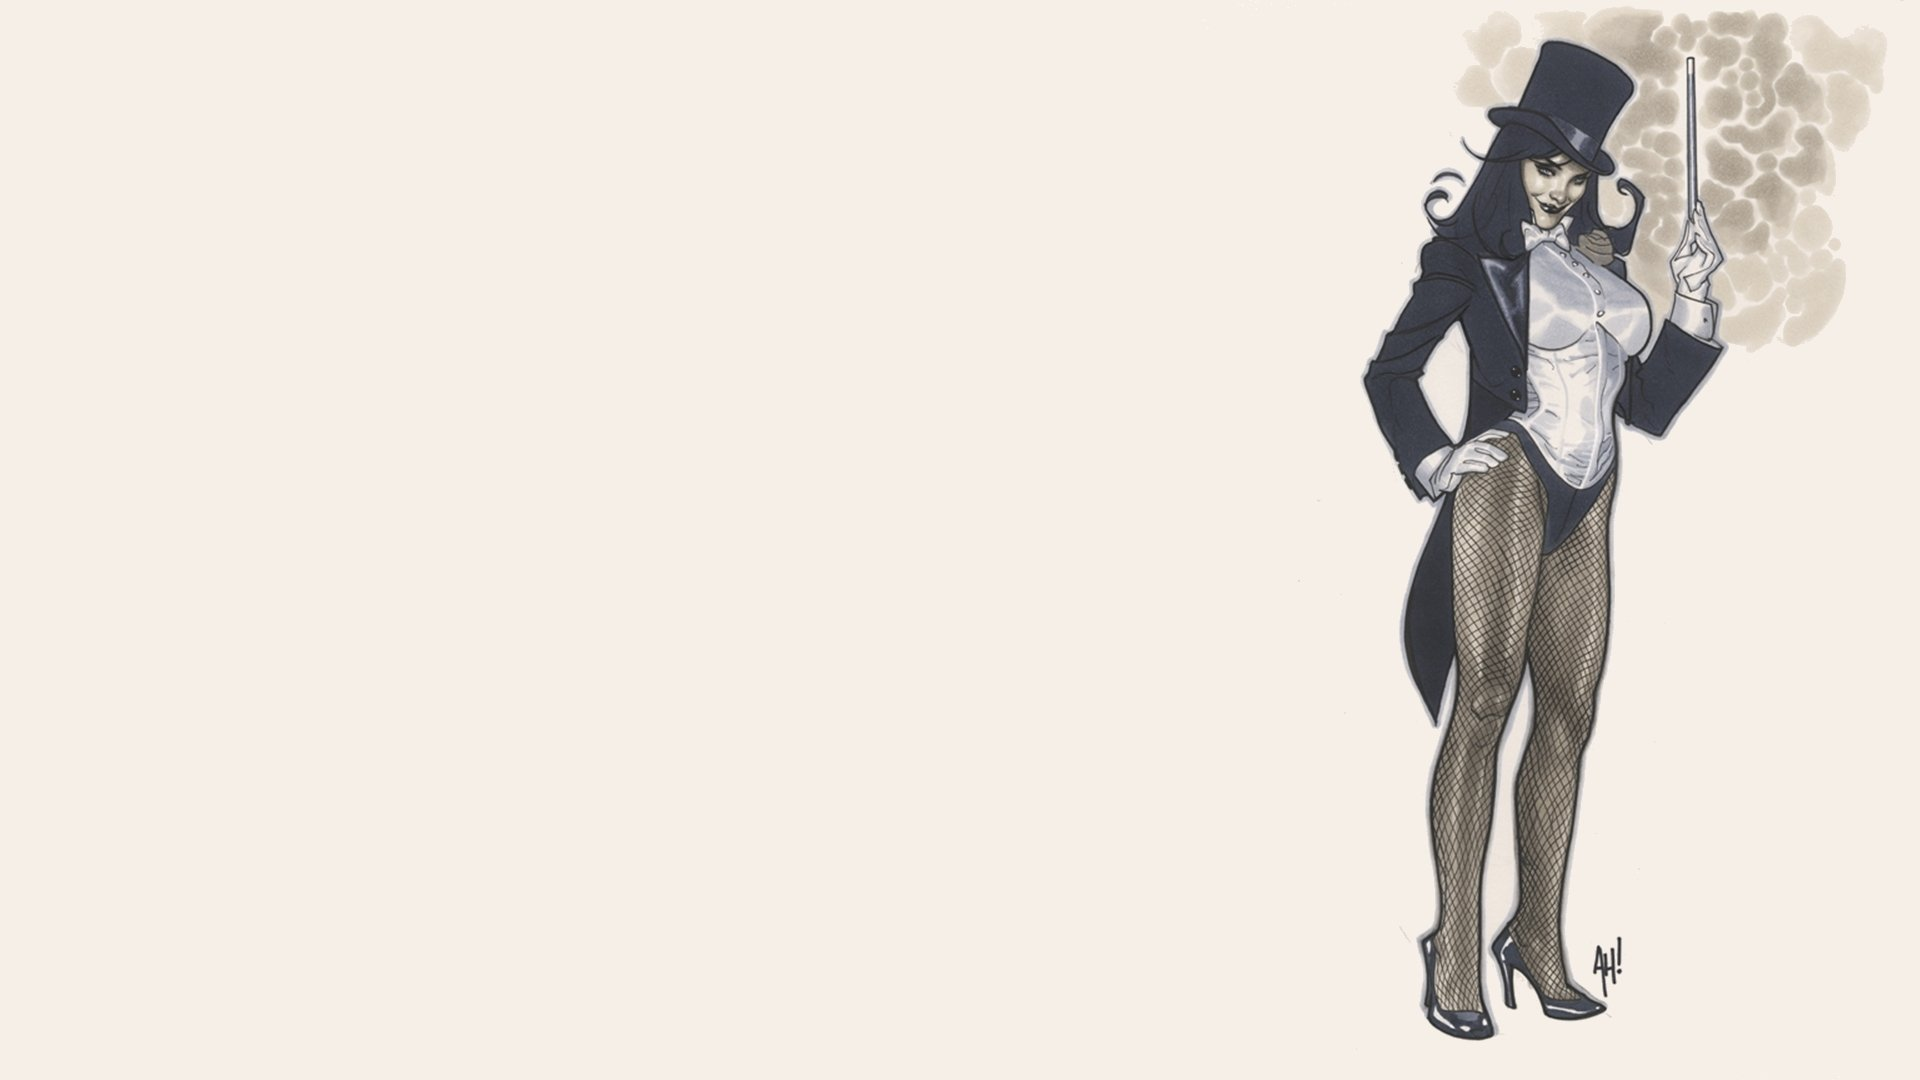 zatanna dc wallpaper - photo #4